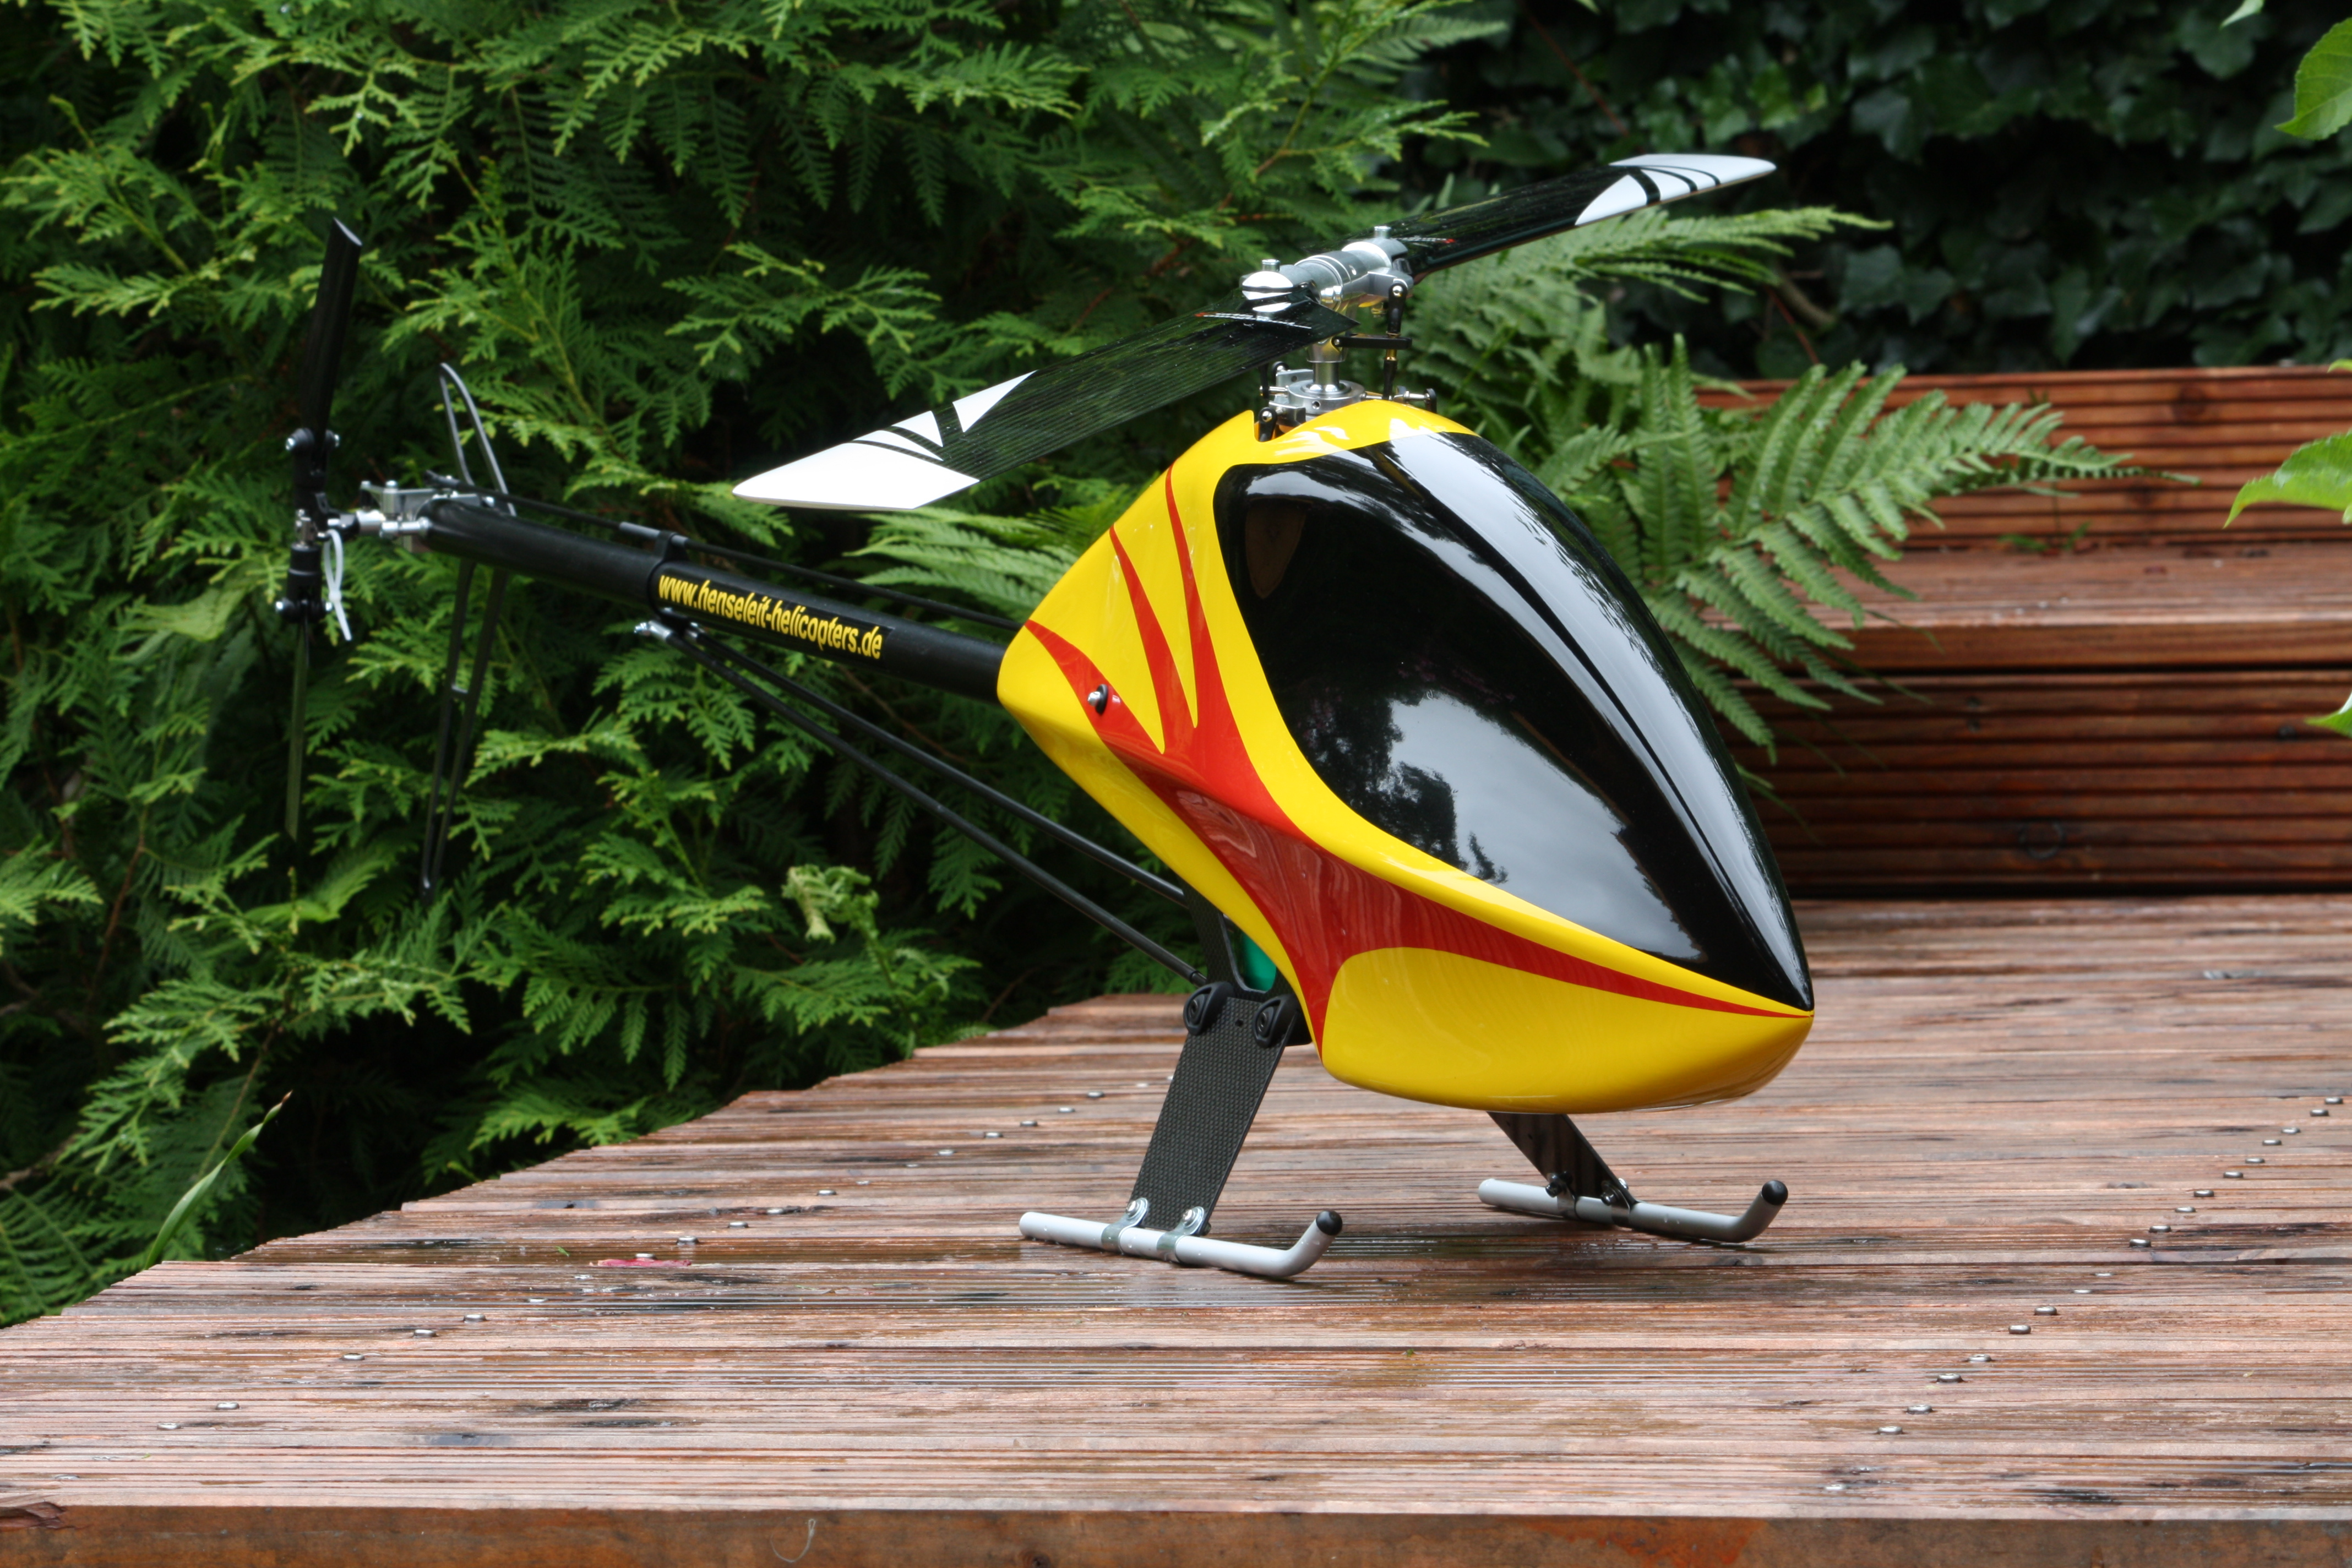 mini rc heli with File Tdr Yellow2 on 450 X Rtf Blh1900 additionally Archivo MQ 9 Reaper in flight  2007 furthermore 32737196233 besides P Spionage Kamera also File TDR Yellow2.